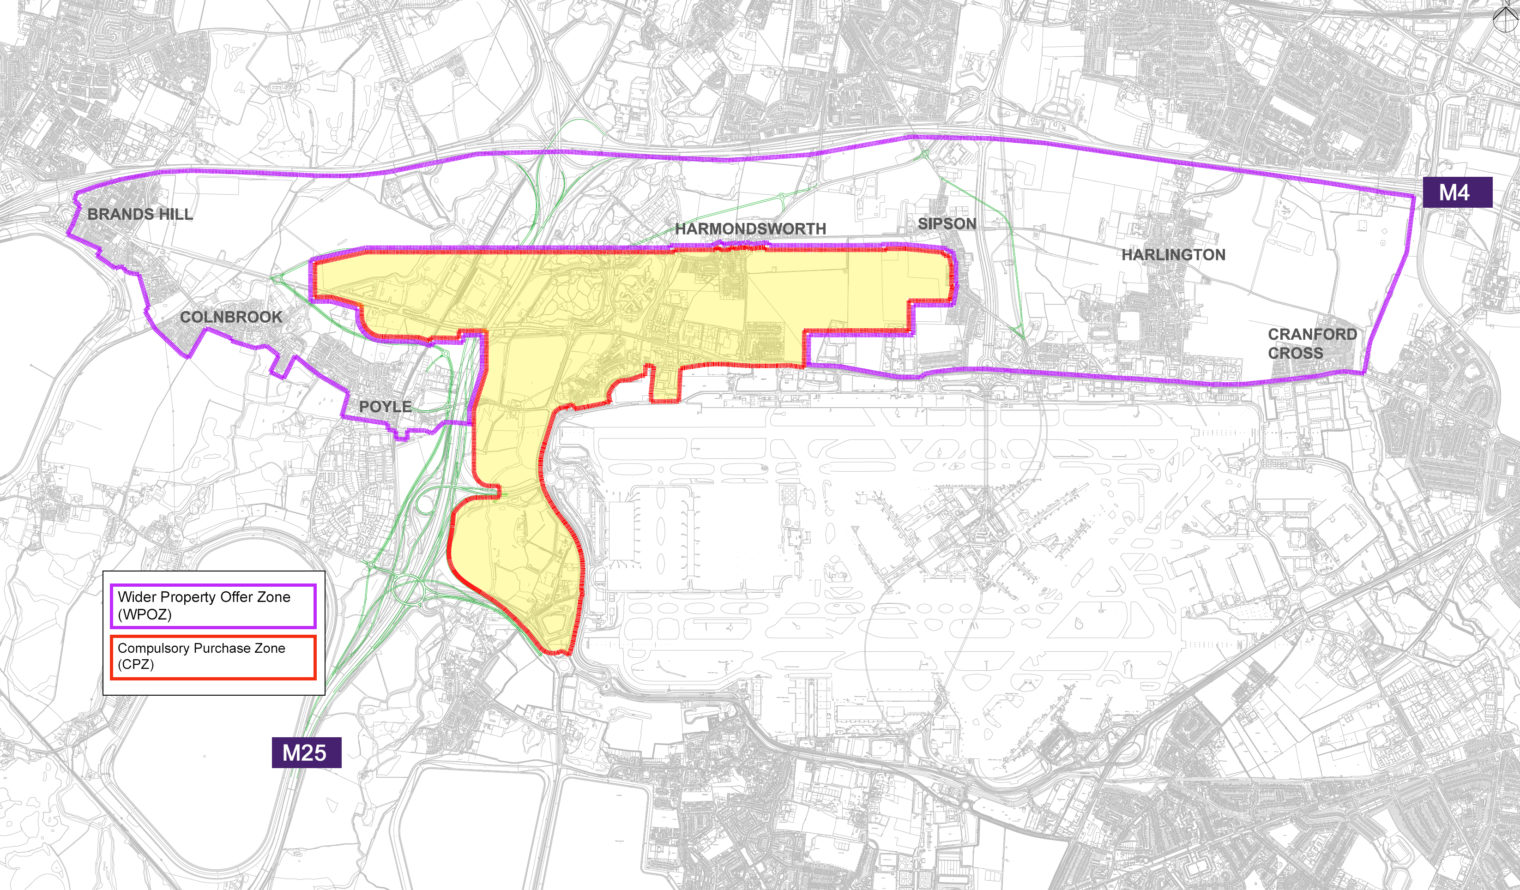 Heathrow-expansion-compulsory-purchase-zone-1-1520x890.jpg